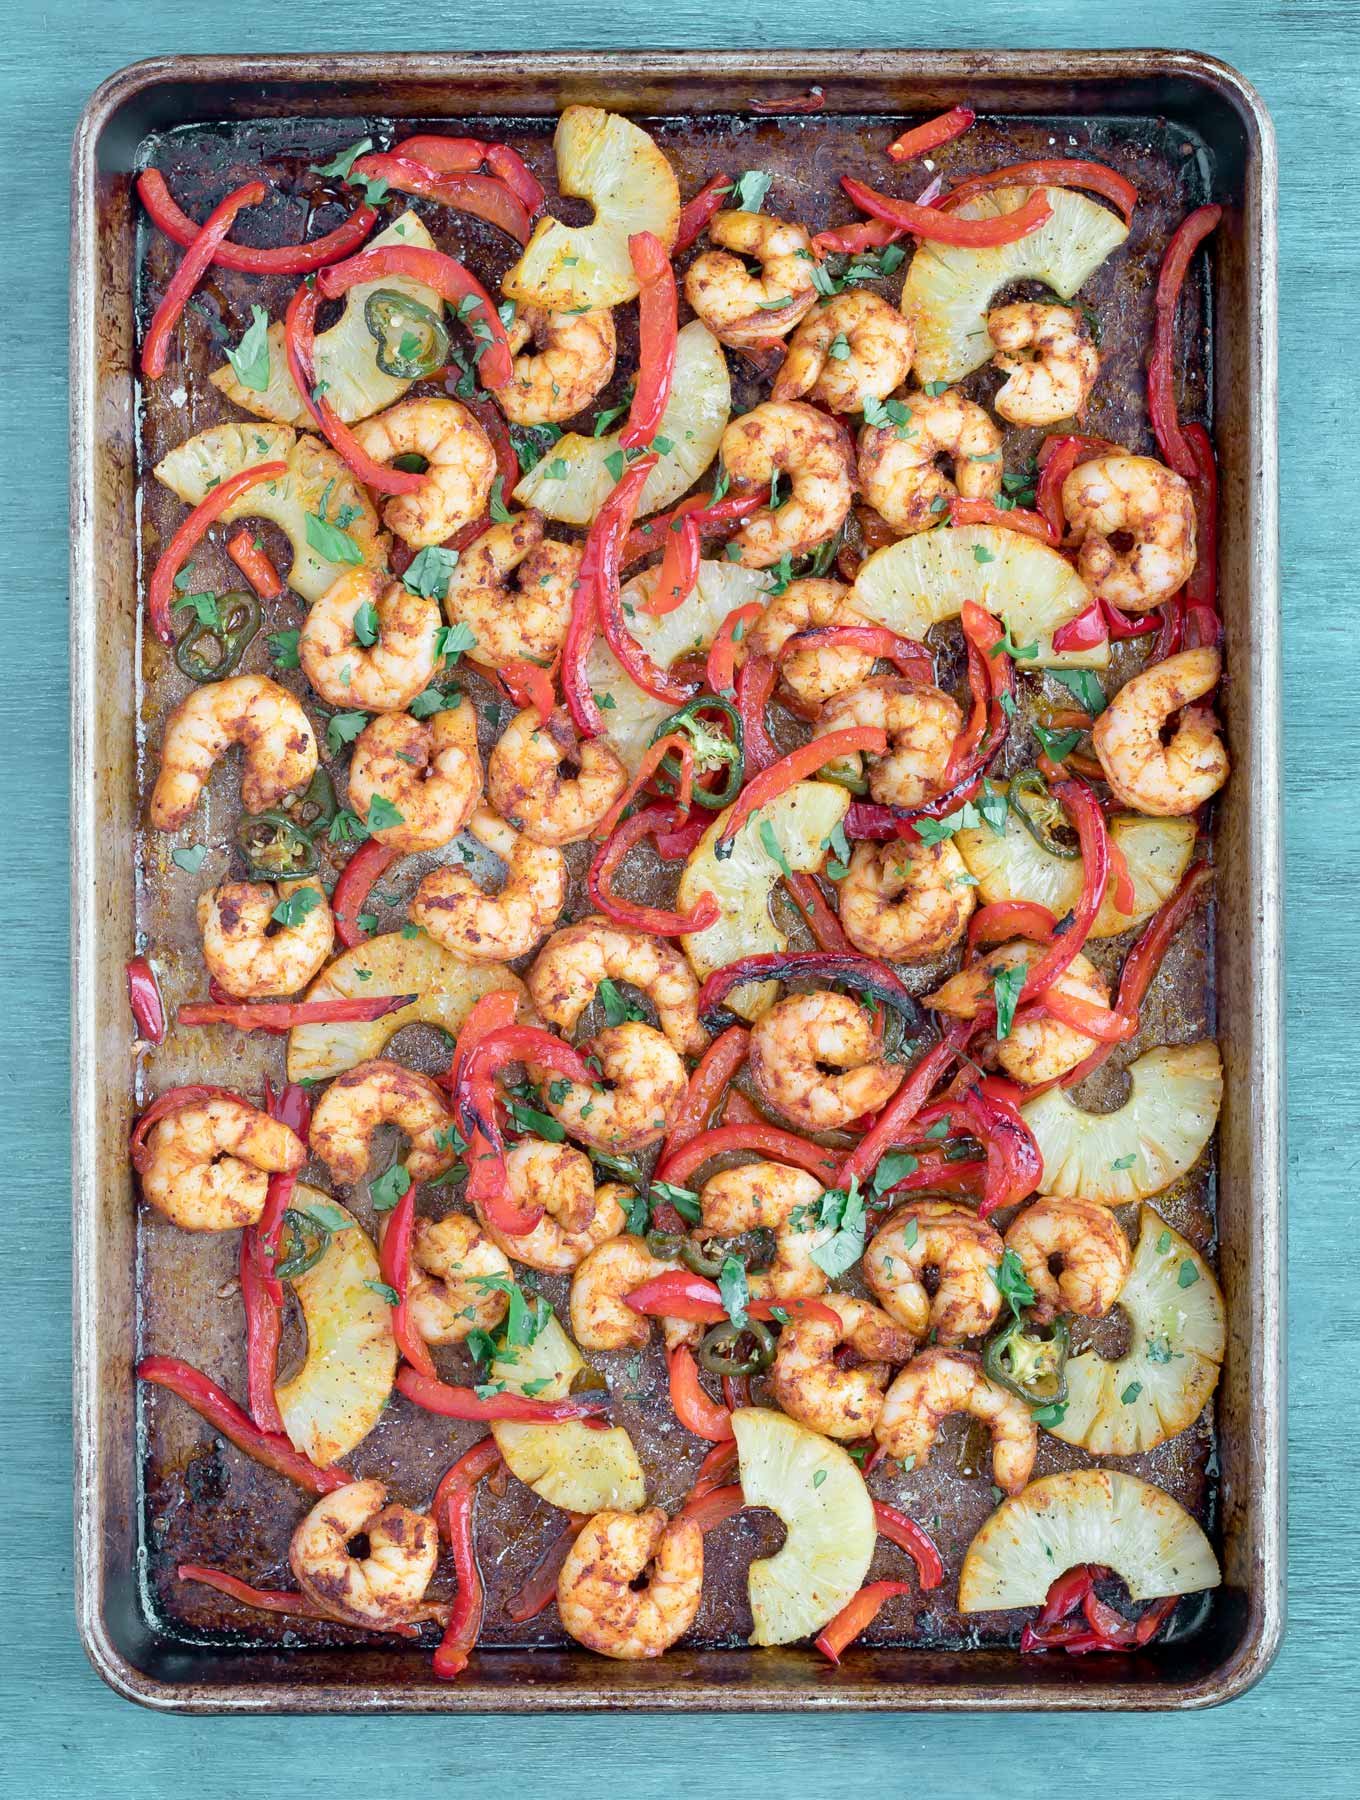 Tray of Shrimp, peppers and pineapple